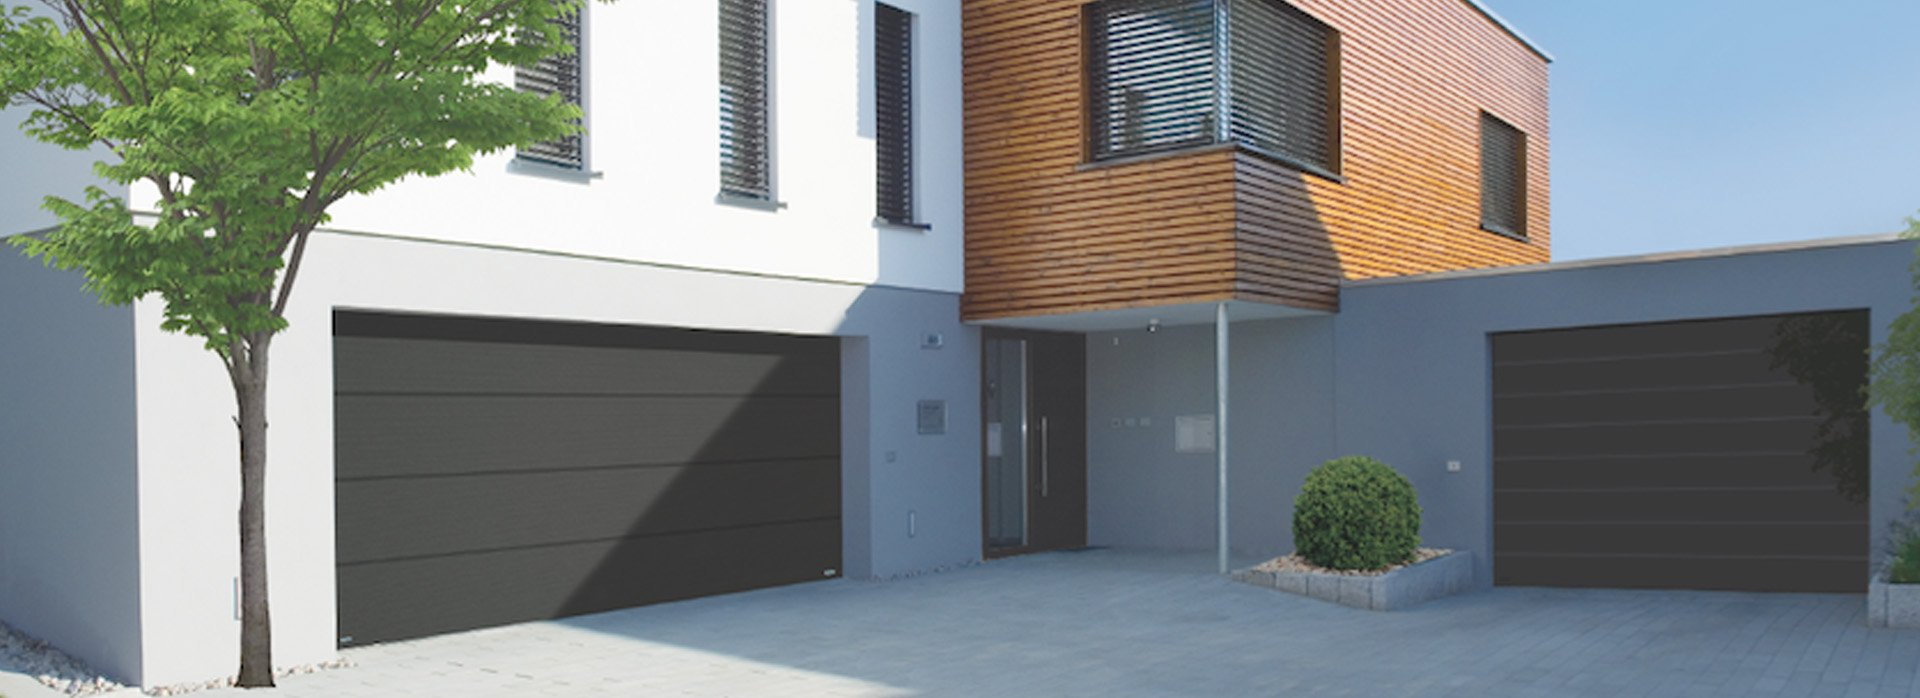 Sectional Garage Doors In Whitley Bay Newcastle And